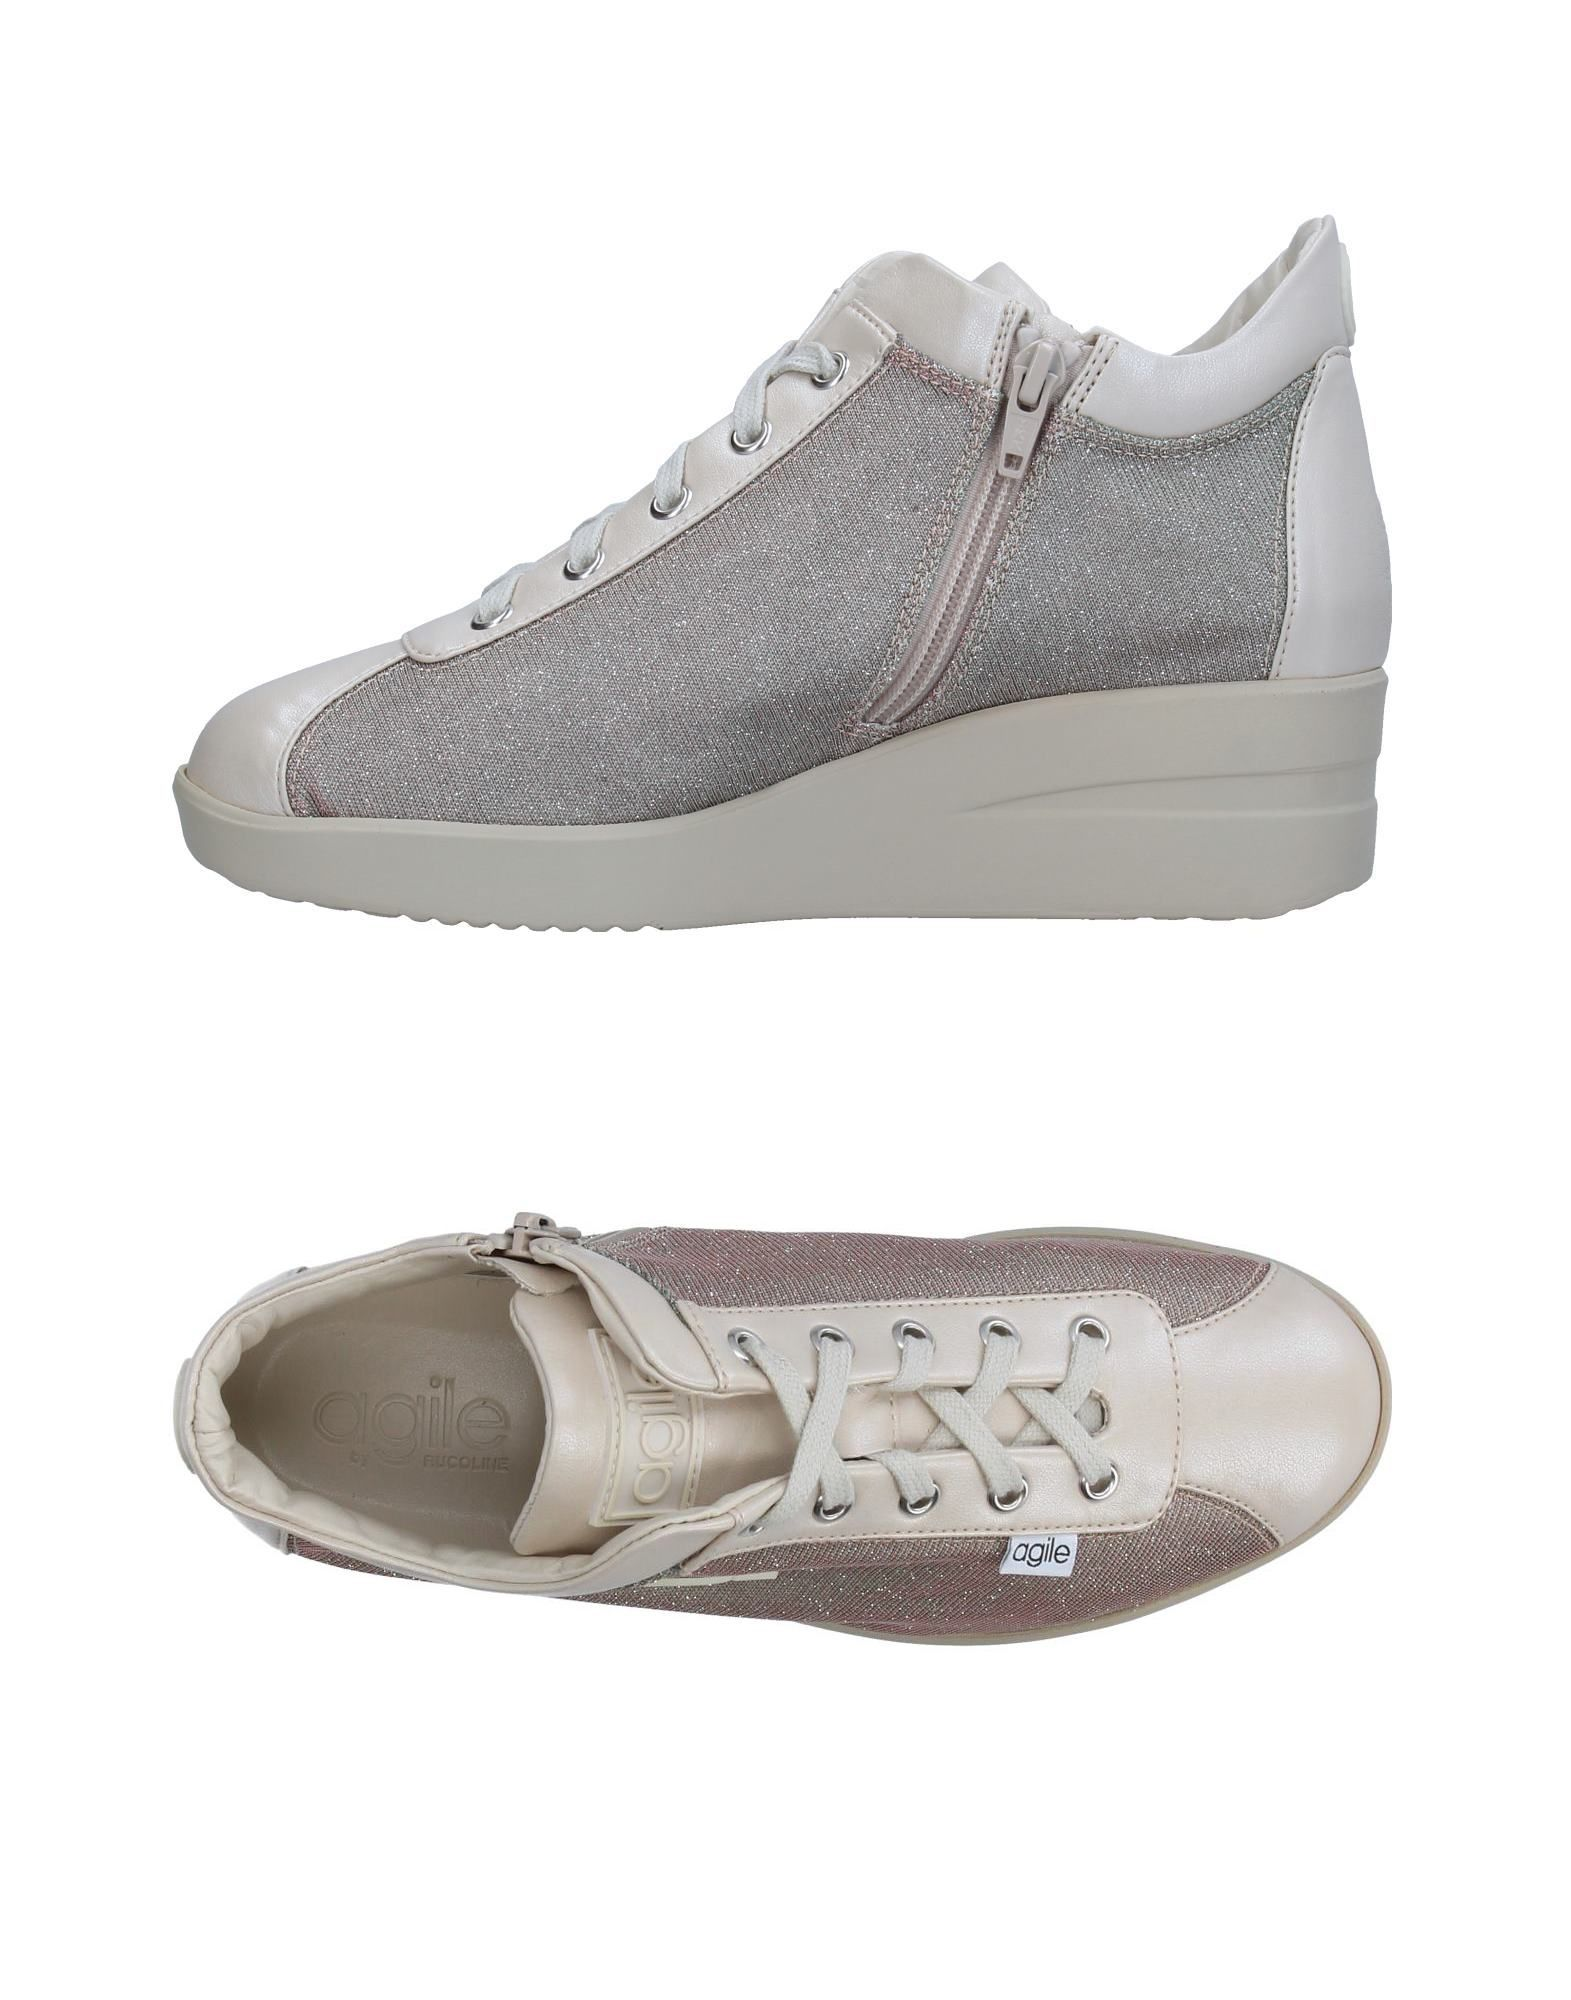 Agile By Rucoline Sneakers - Women online Agile By Rucoline Sneakers online Women on  United Kingdom - 11334390OB 4e334a